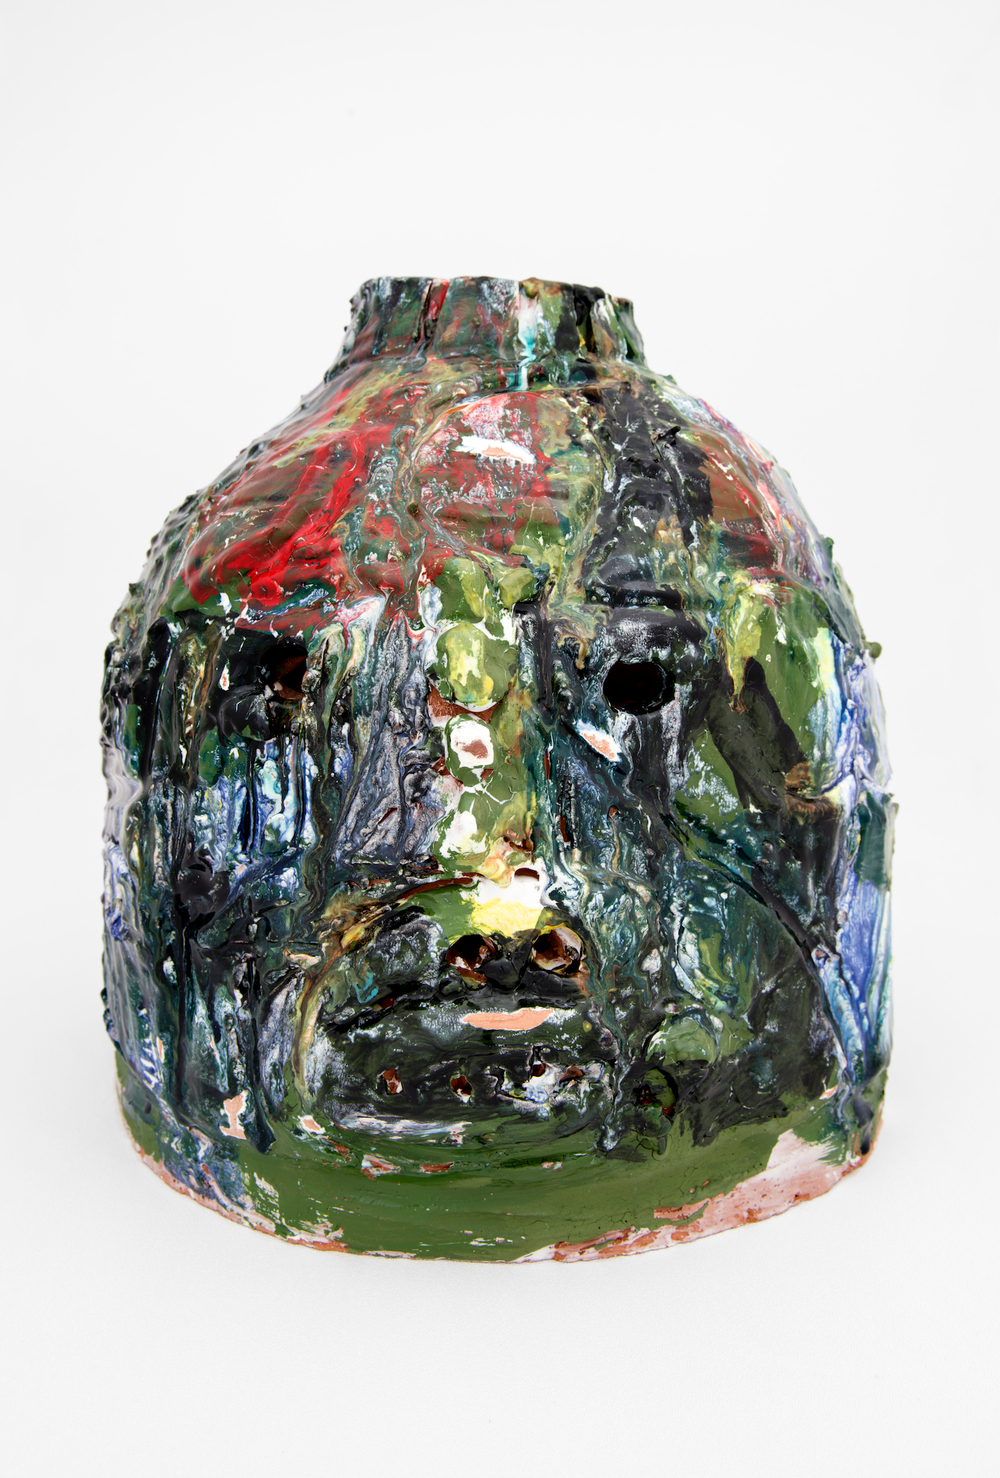 "William J. O'Brien  Blood Face  2012   Glazed ceramic   15 1/2"" x 14"" x 14""  WOB803"